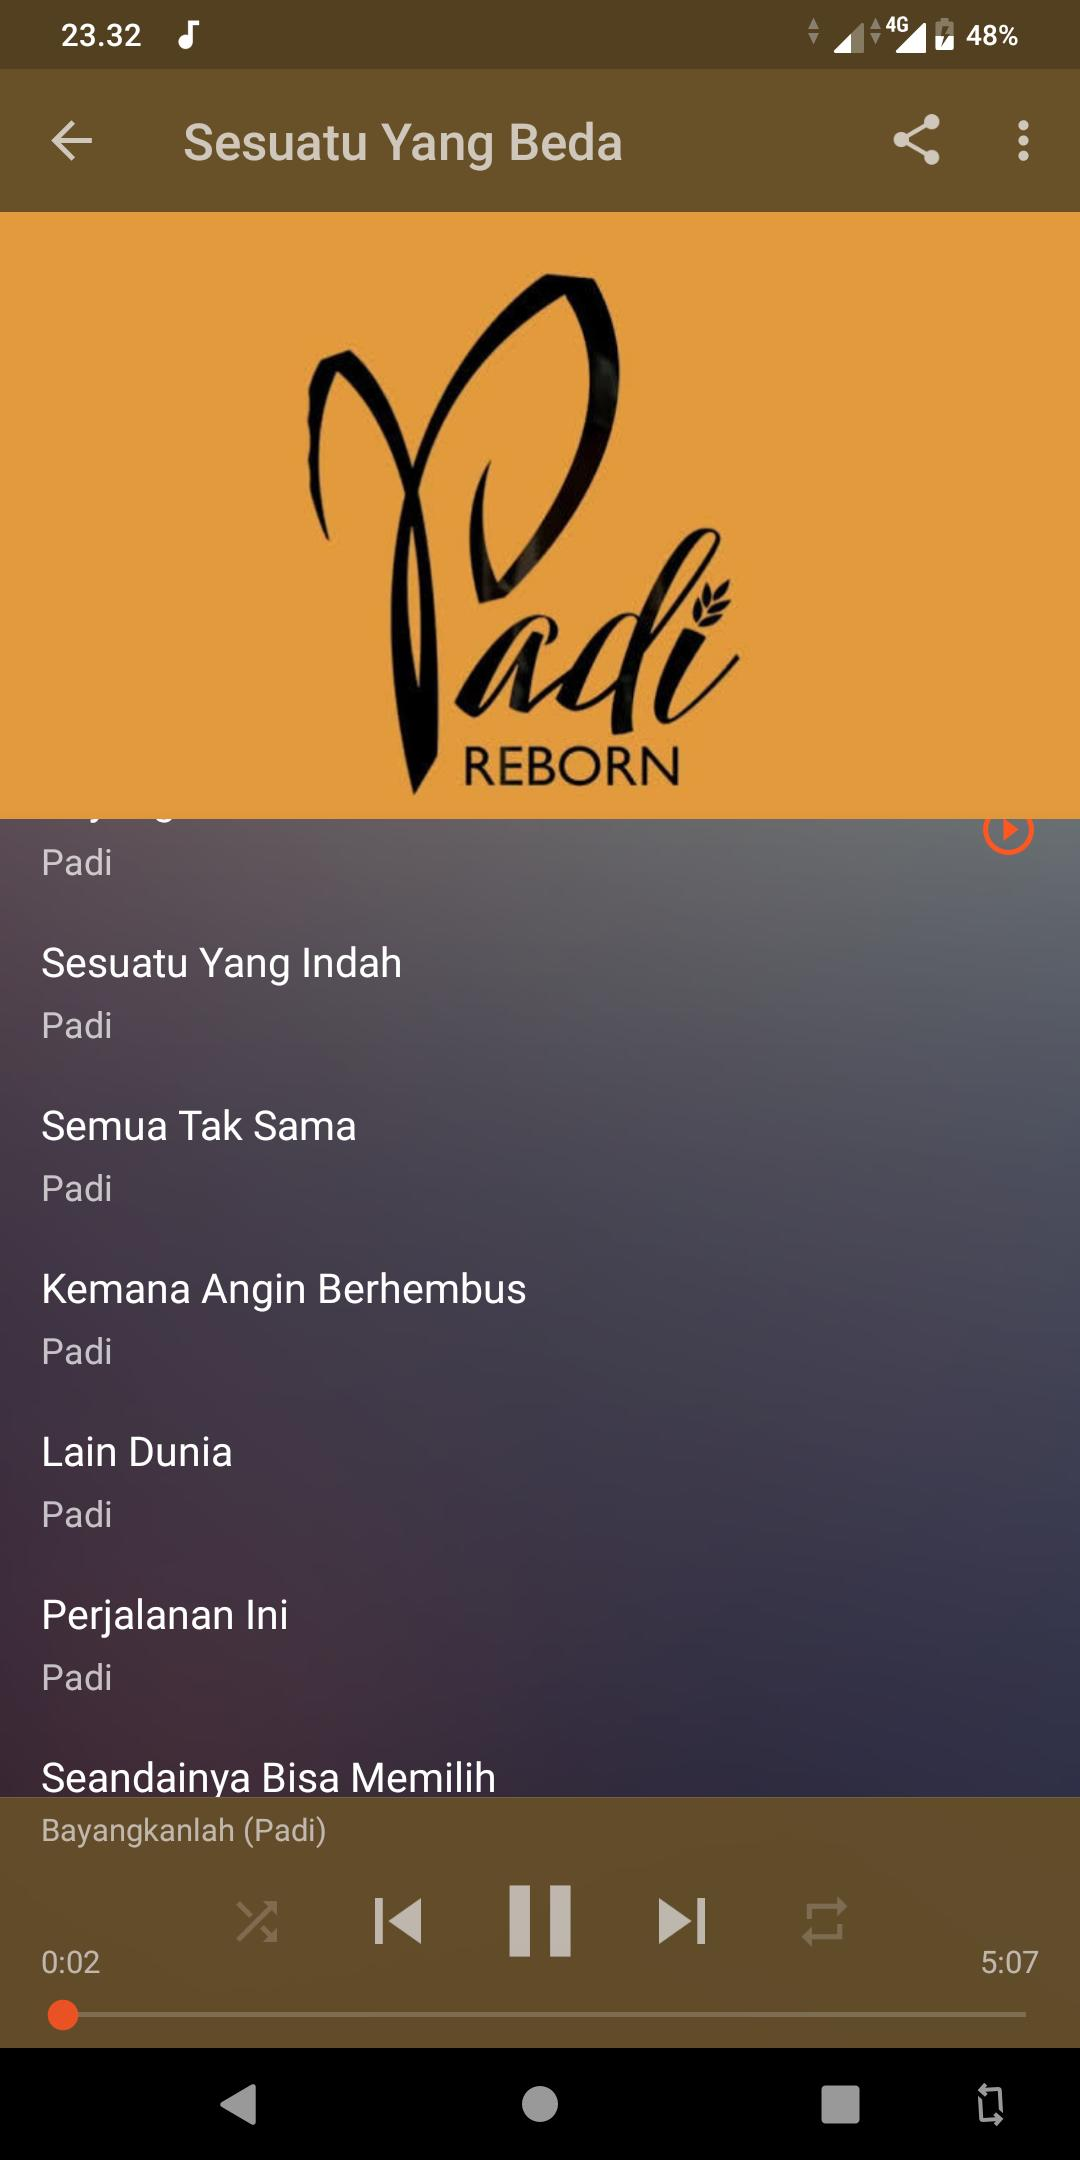 Band padi full mp3 for android apk download.